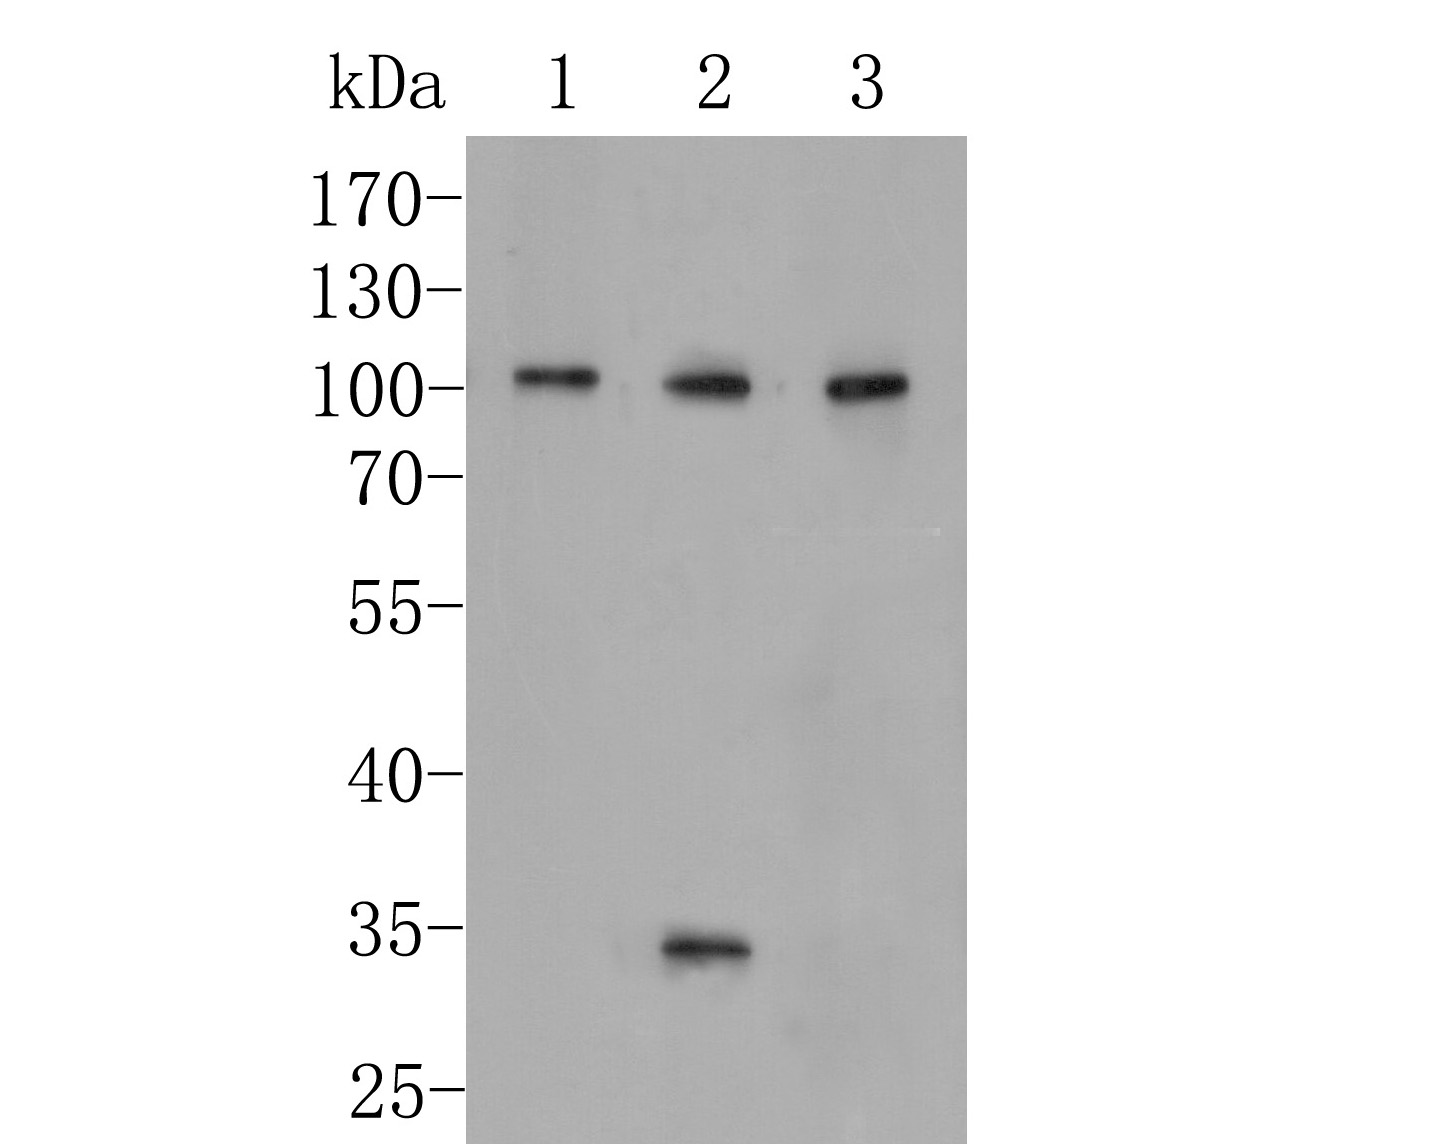 Western blot analysis of CD166 on different lysates. Proteins were transferred to a PVDF membrane and blocked with 5% BSA in PBS for 1 hour at room temperature. The primary antibody (EM1902-36, 1/500) was used in 5% BSA at room temperature for 2 hours. Goat Anti-Mouse IgG - HRP Secondary Antibody (HA1006) at 1:5,000 dilution was used for 1 hour at room temperature.<br /> Positive control: <br /> Lane 1: PC-3M cell lysate<br /> Lane 2: A549 cell lysate<br /> Lane 3: SHSY5Y cell lysate